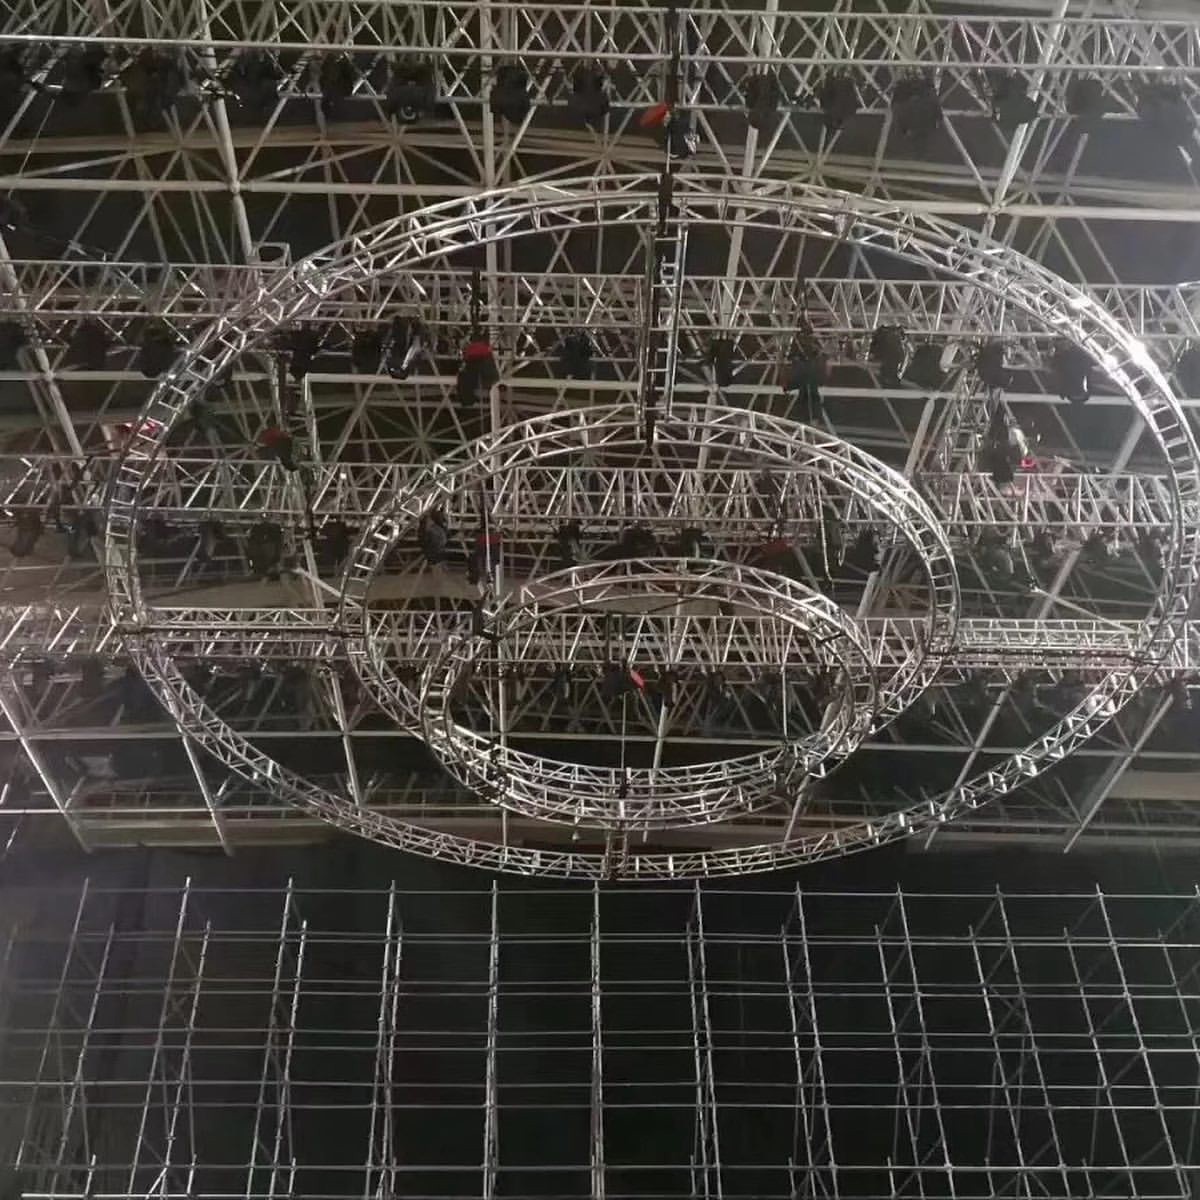 Exciting Truss System Project